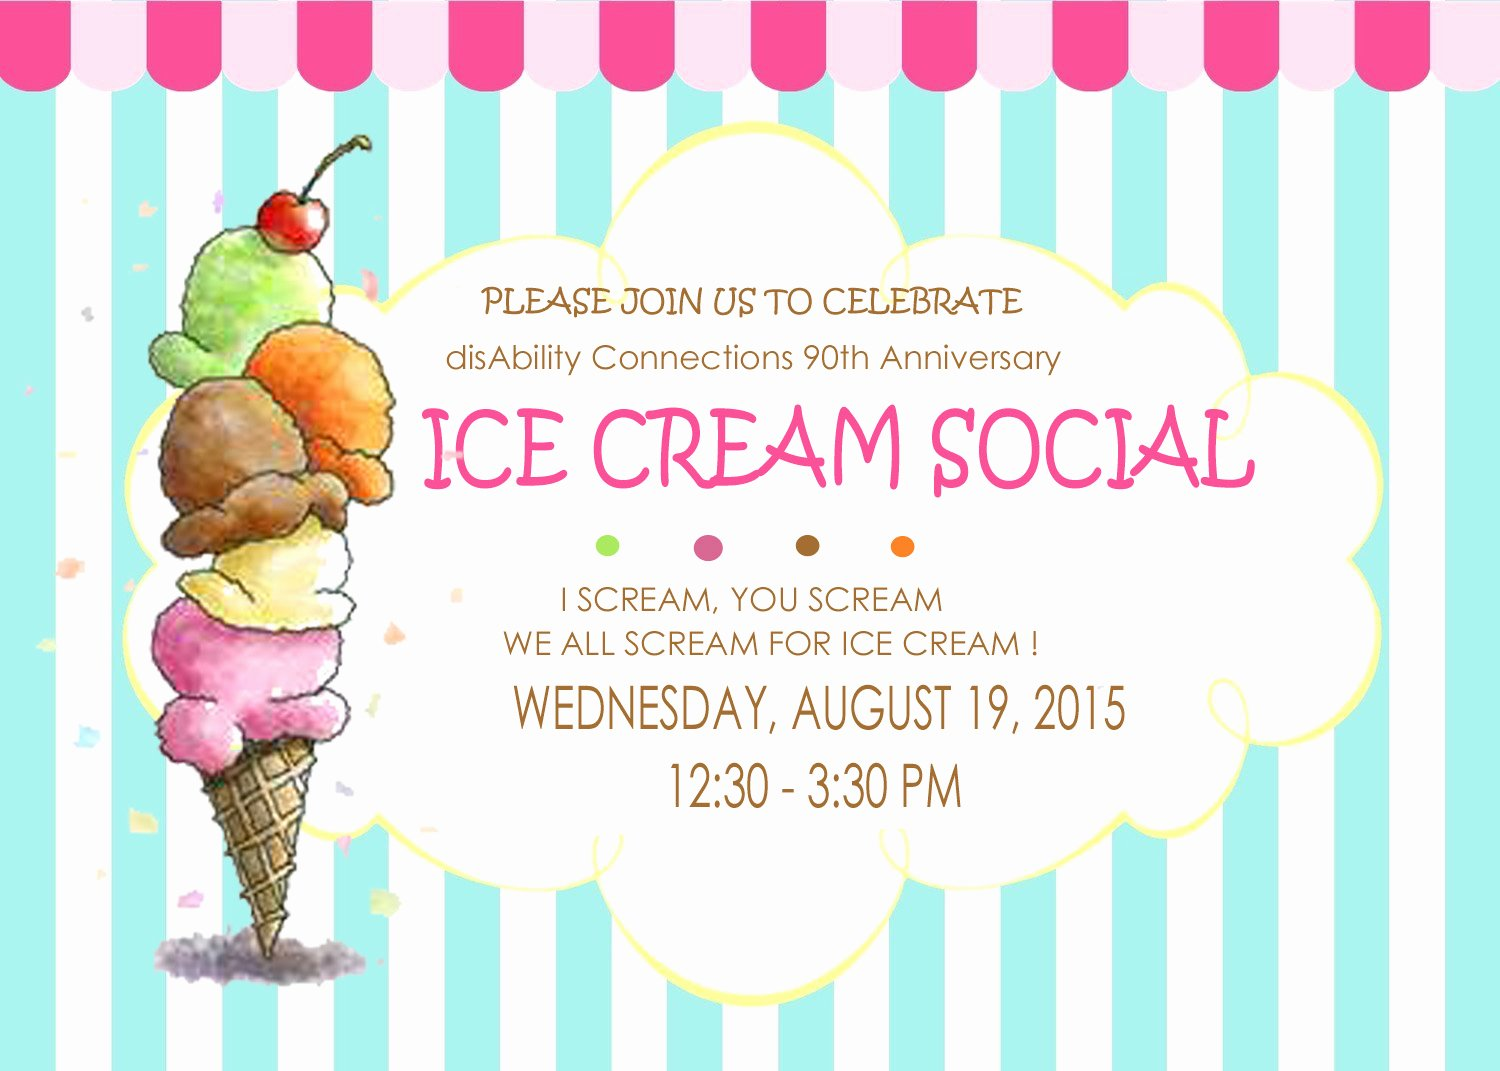 Ice Cream social Flyer Awesome Disability Connections Inc Ice Cream social 90th Anniversary Celebration